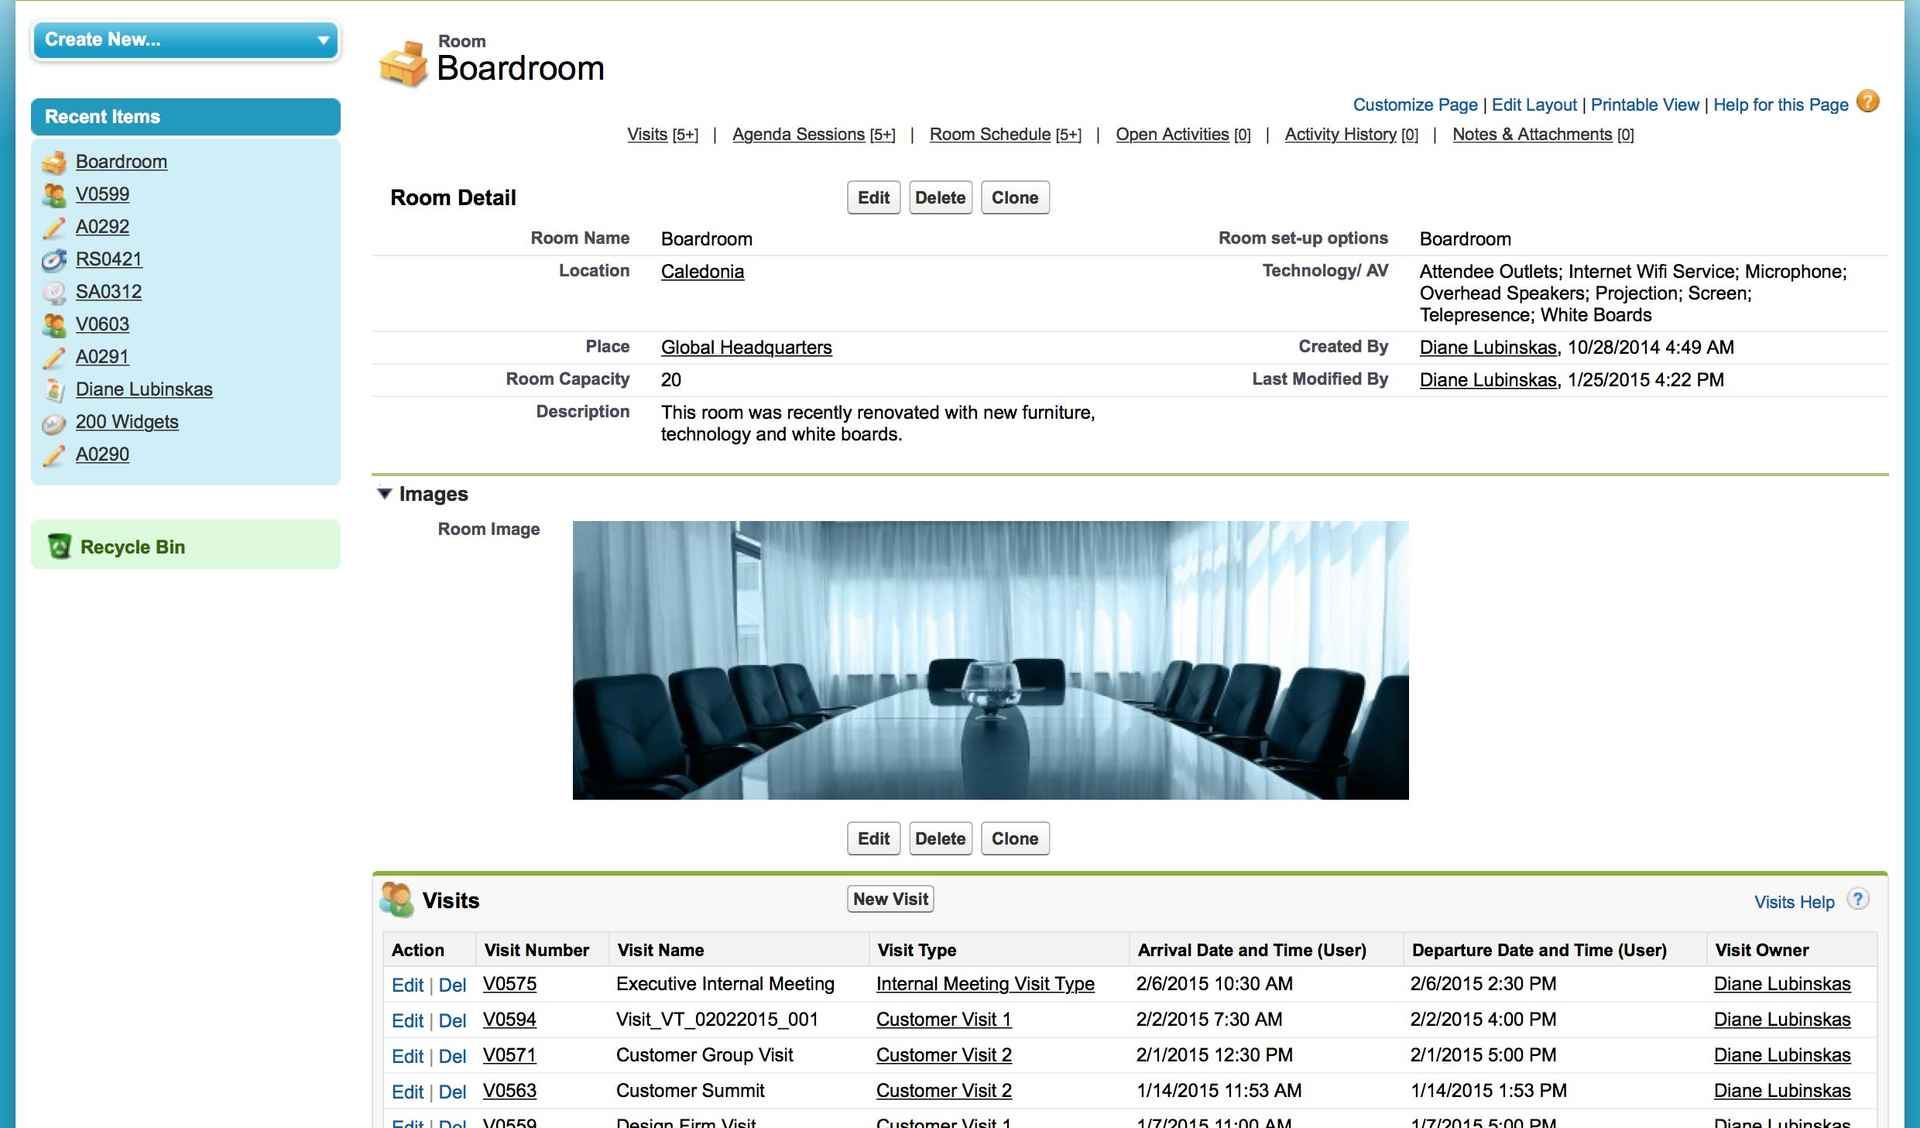 A room detail page in the VisitOps app, where you can see its history, schedule, capacity, and more.